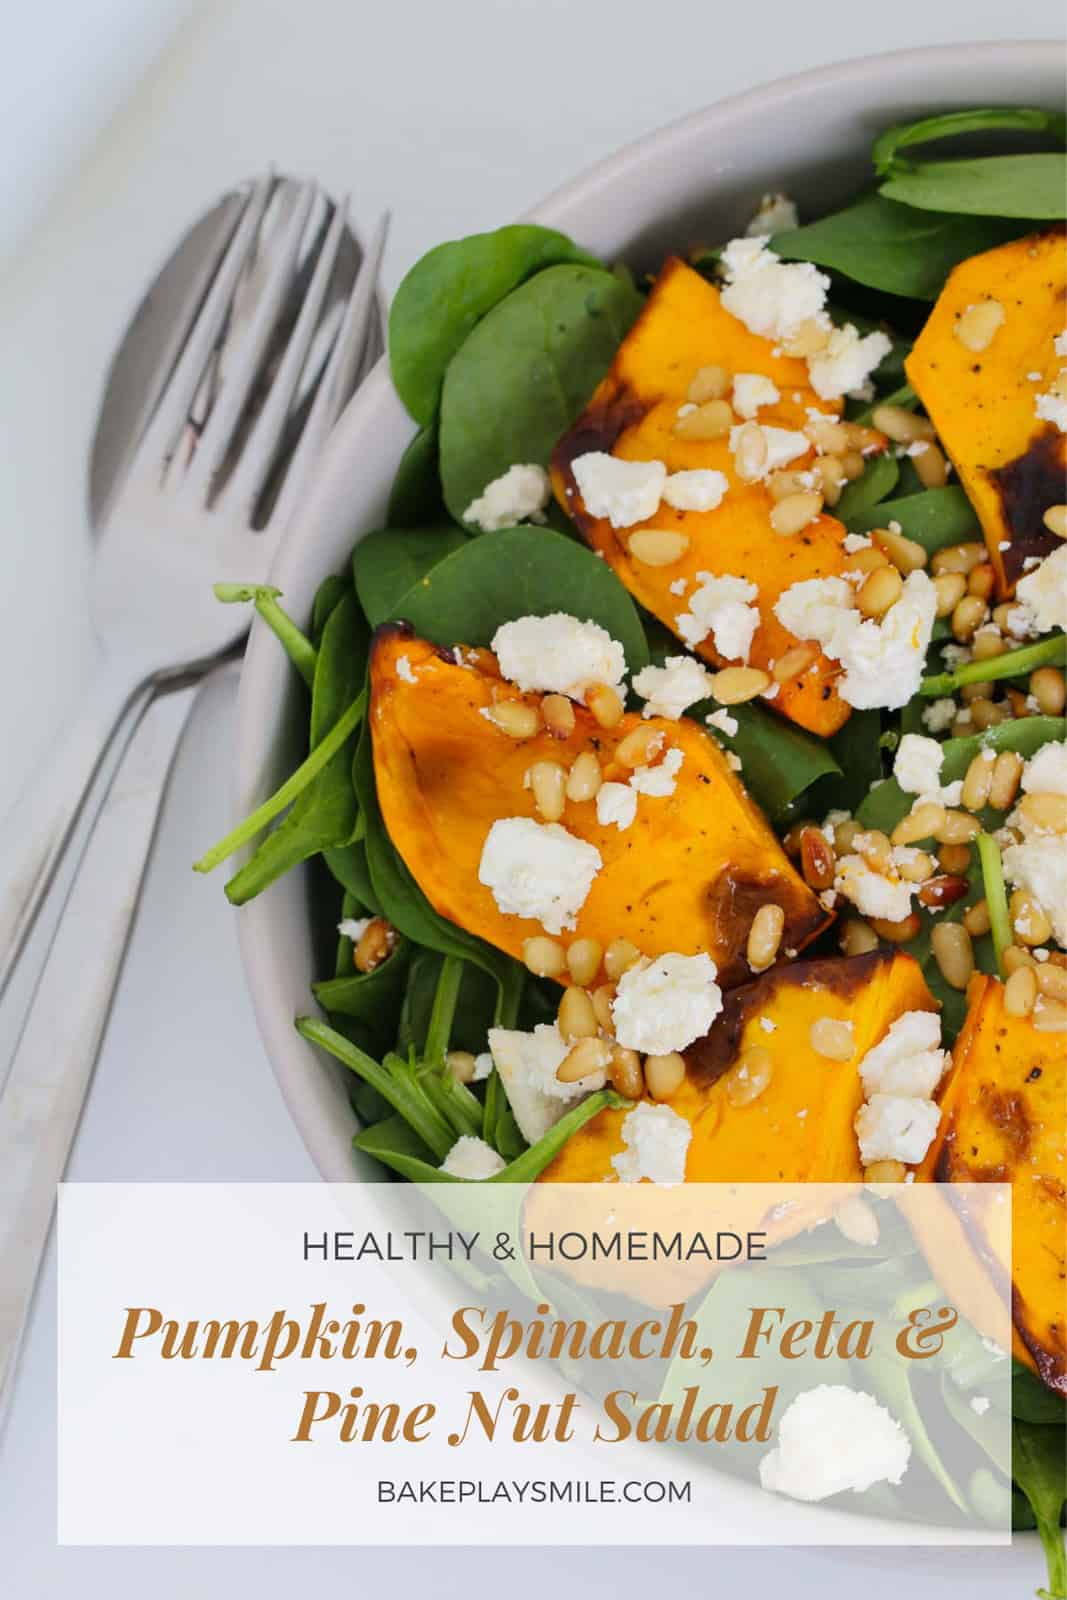 A bowl filled with baby spinach leaves, roast pumpkin slices, toasted pine nuts, crumbled feta and dressing